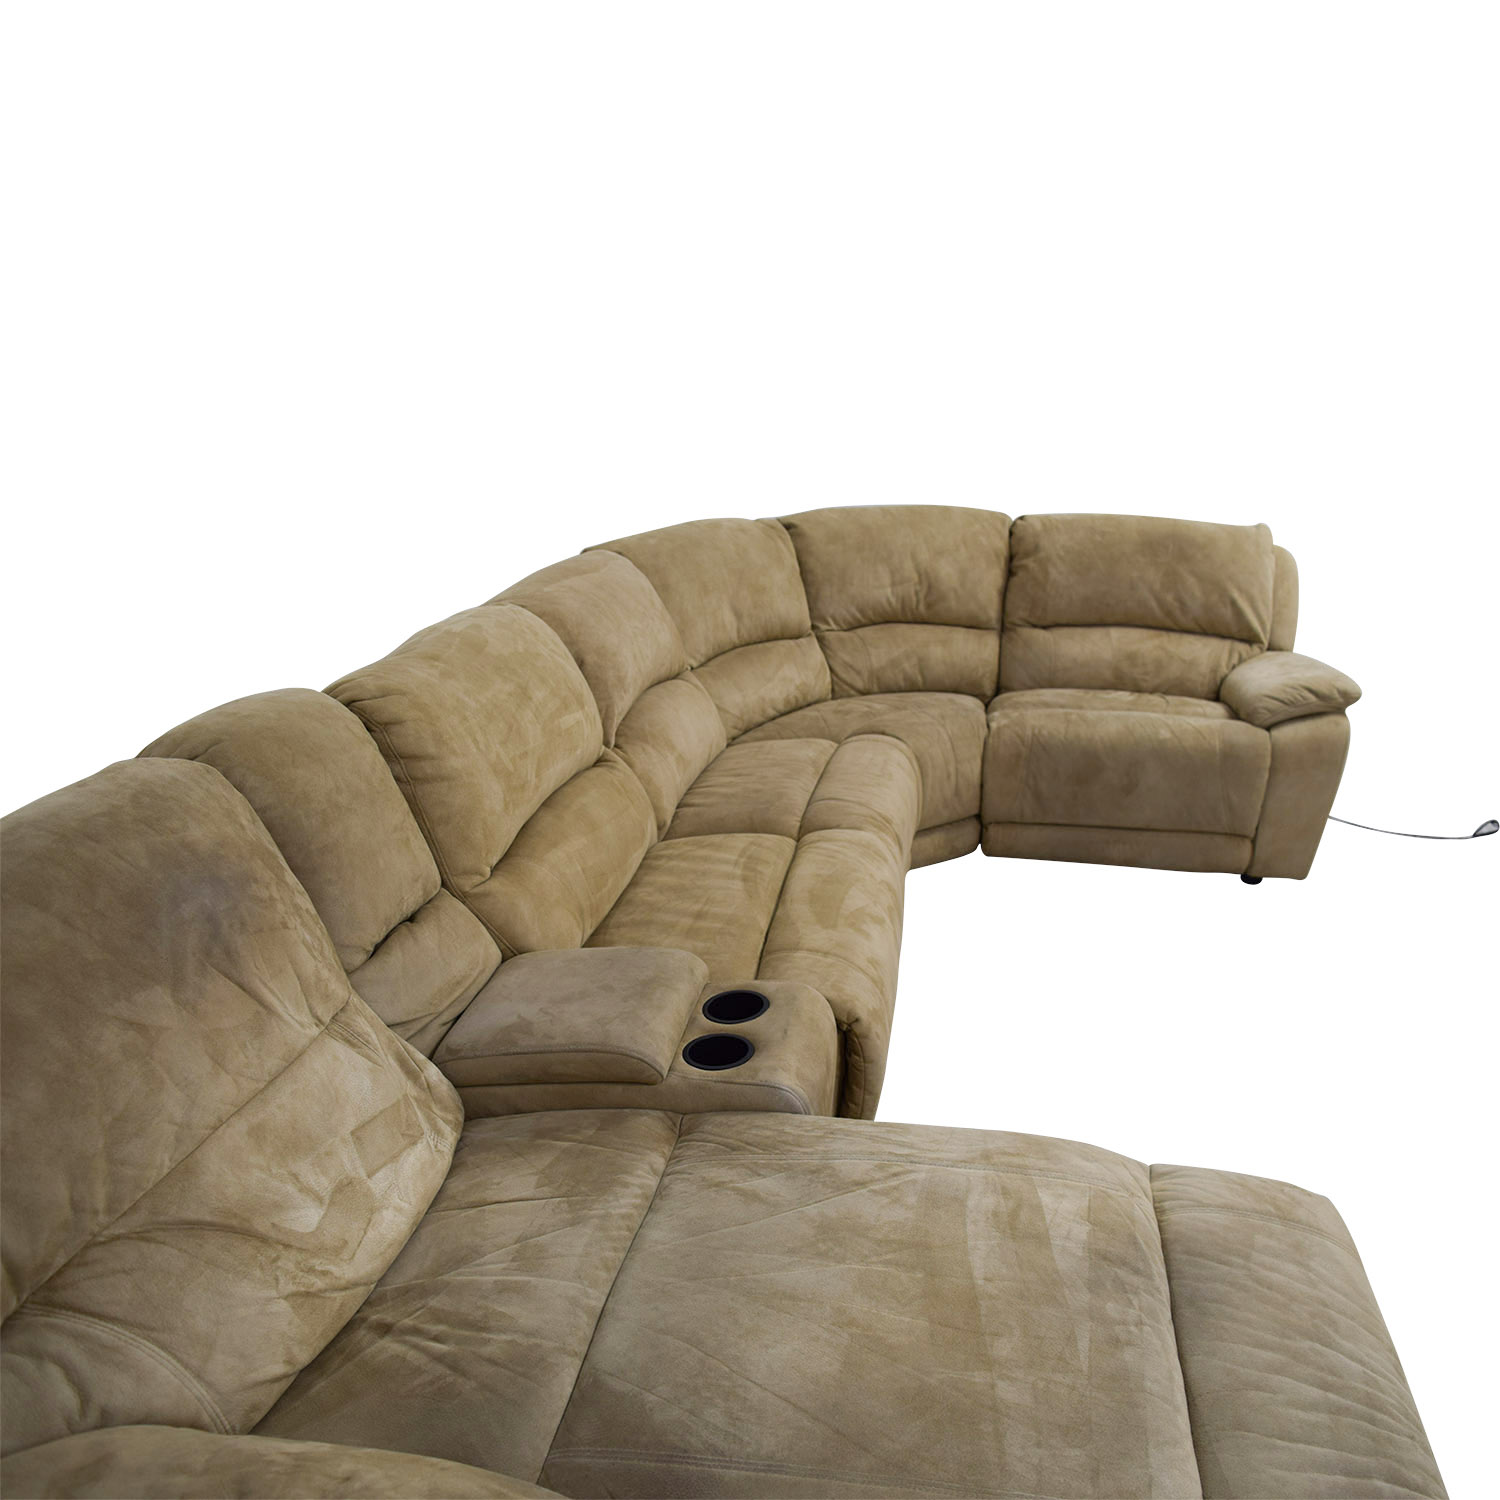 Terrific 68 Off Raymour Flanigan Raymour Flanigan Cindy Crawford Mackenzie Microfiber Power Reclining Sectional Sofas Unemploymentrelief Wooden Chair Designs For Living Room Unemploymentrelieforg